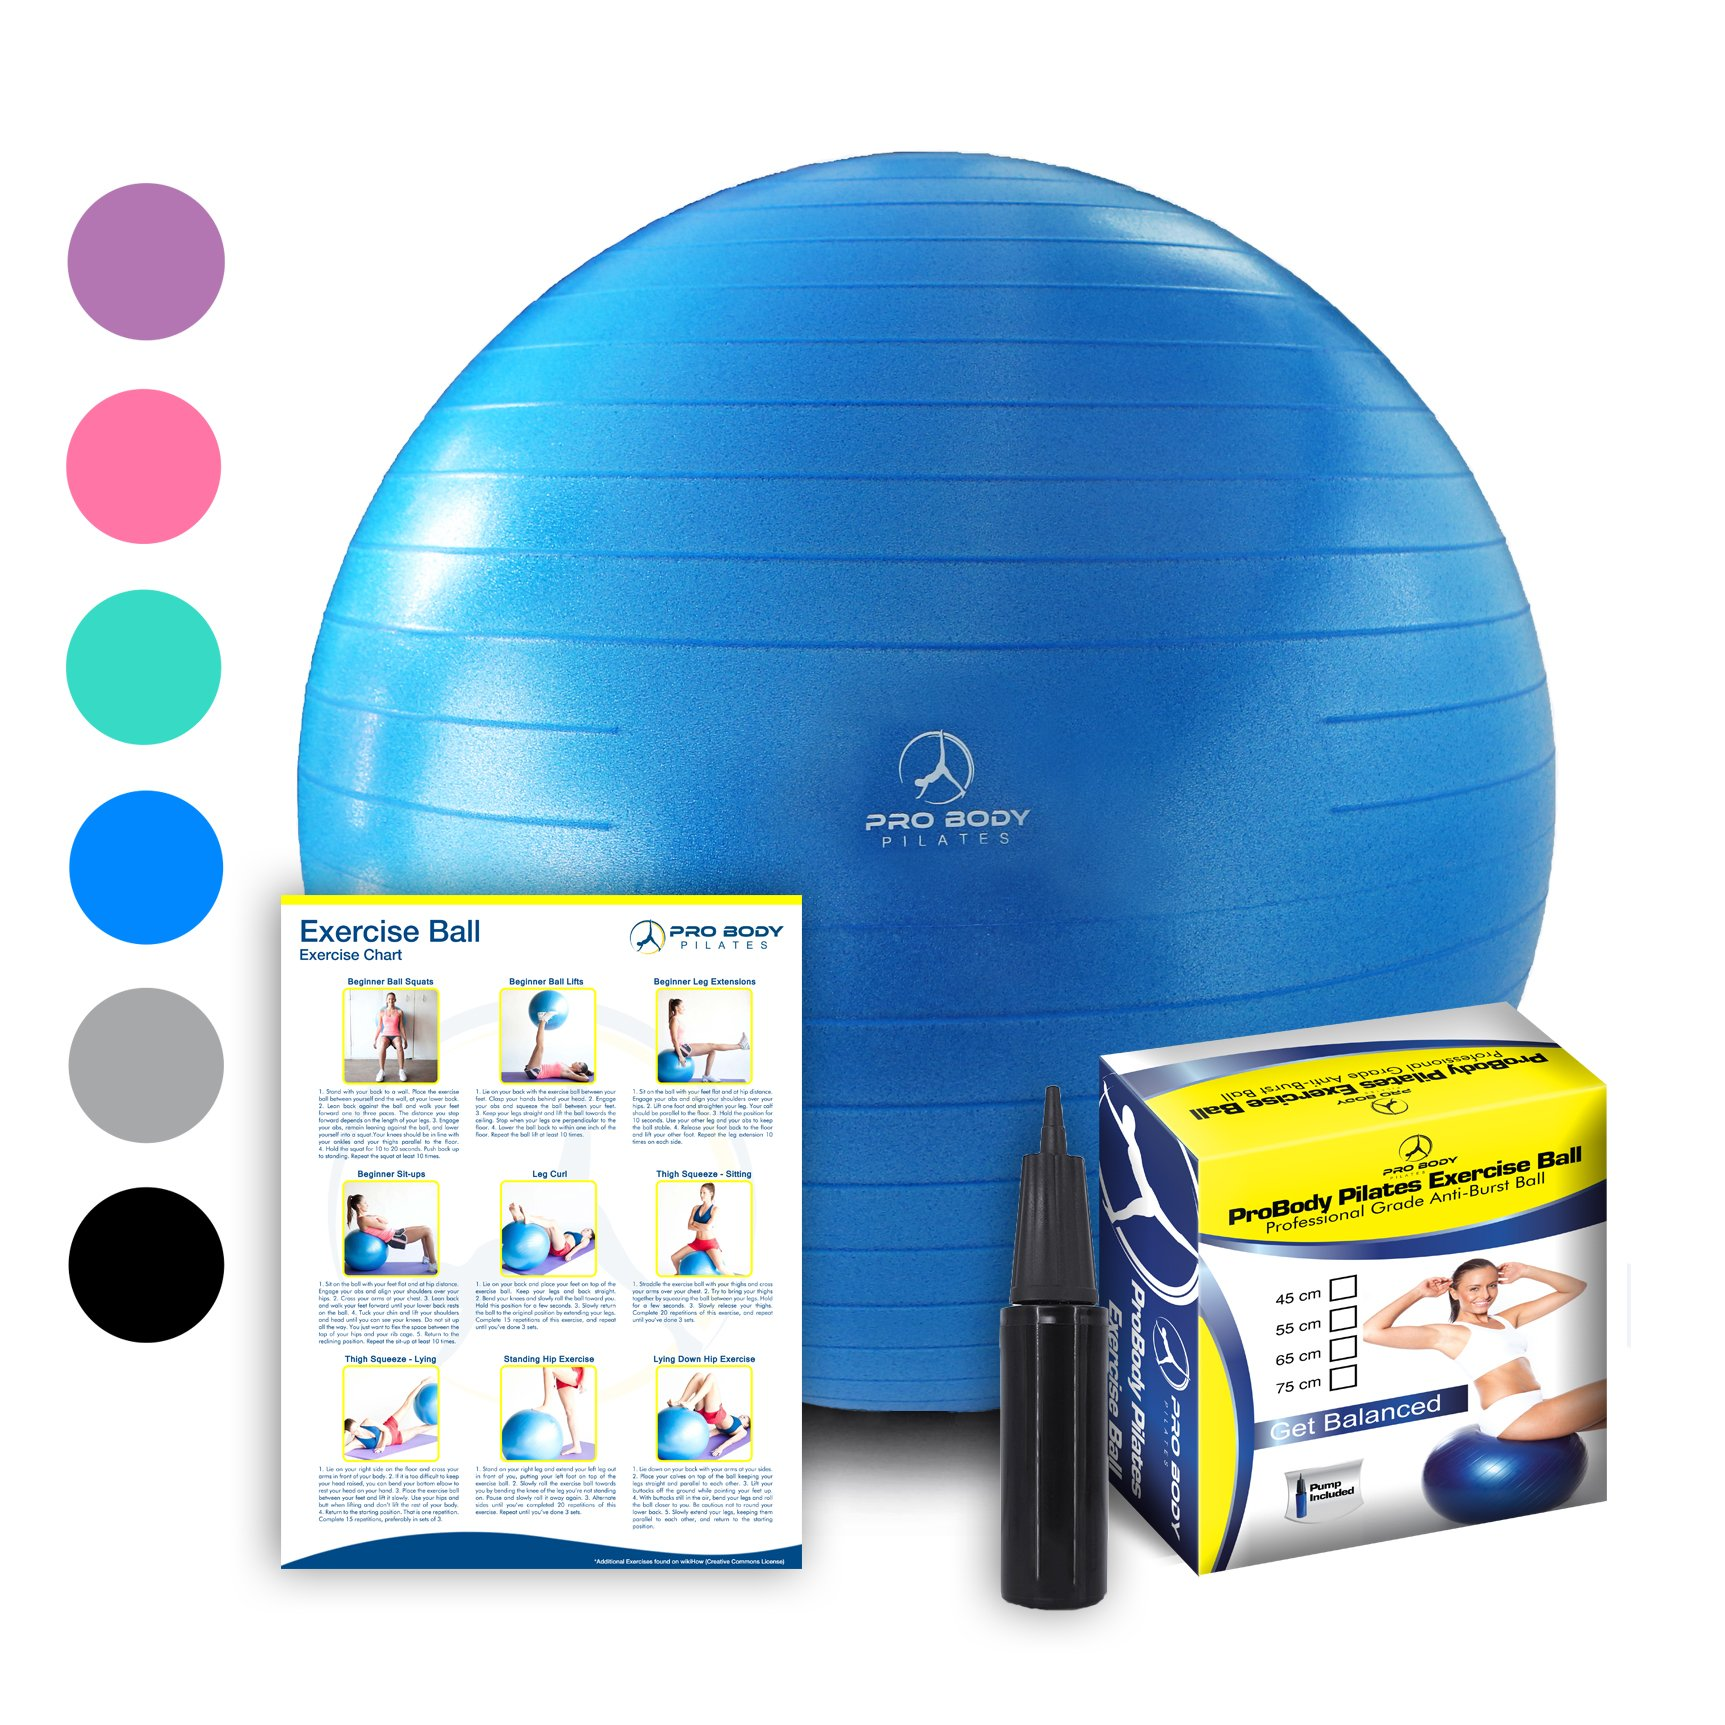 Exercise Ball - Professional Grade Anti-Burst Fitness, Balance Ball for Pilates, Yoga, Birthing, Stability Gym Workout Training and Physical Therapy (Blue, 55cm) by ProBody Pilates (Image #10)